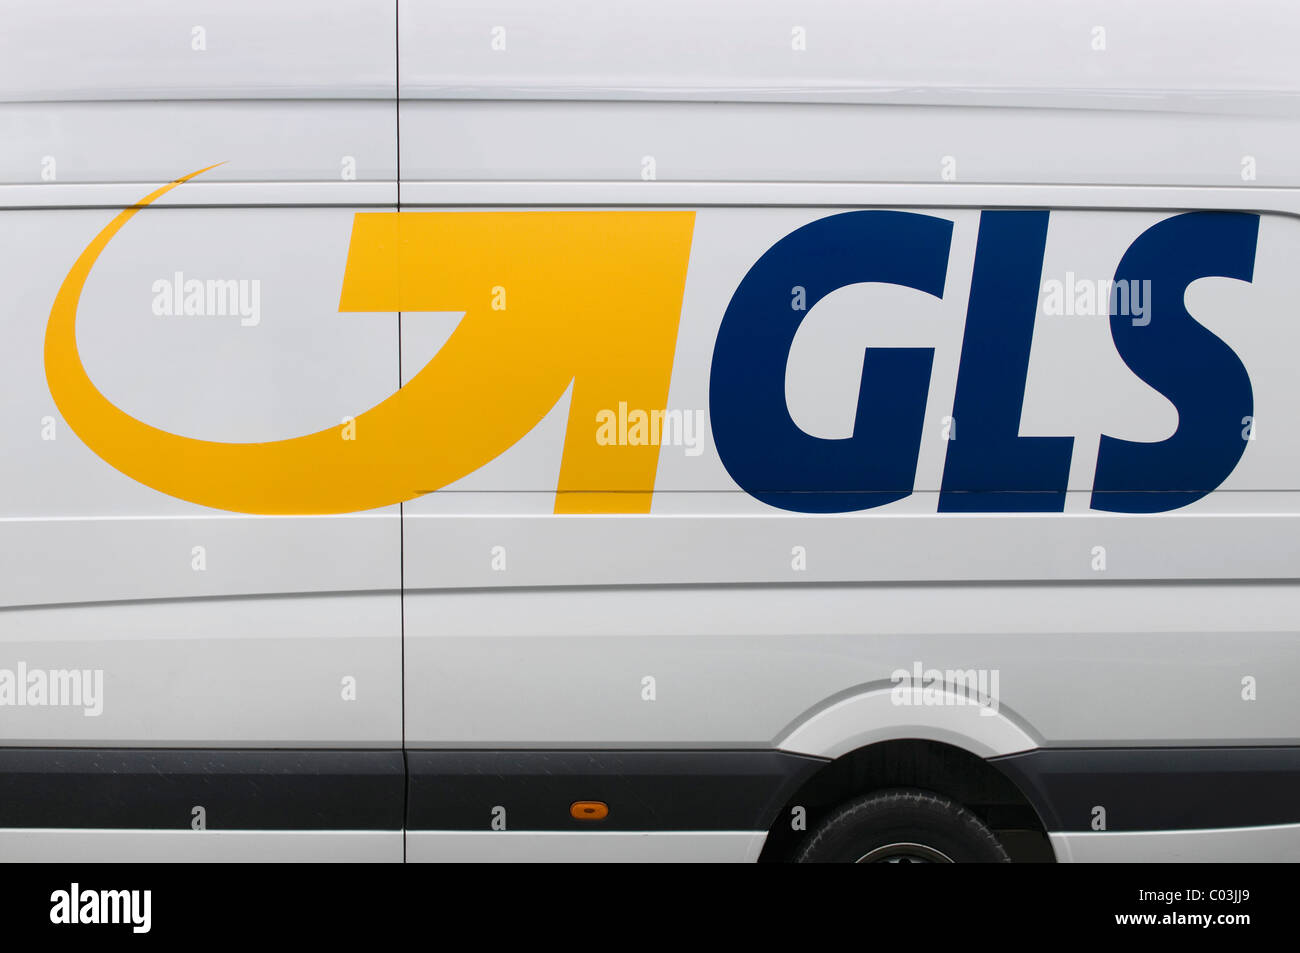 GLS Logo on a delivery truck, General Logistics Systems, parcel and express services, service provider - Stock Image